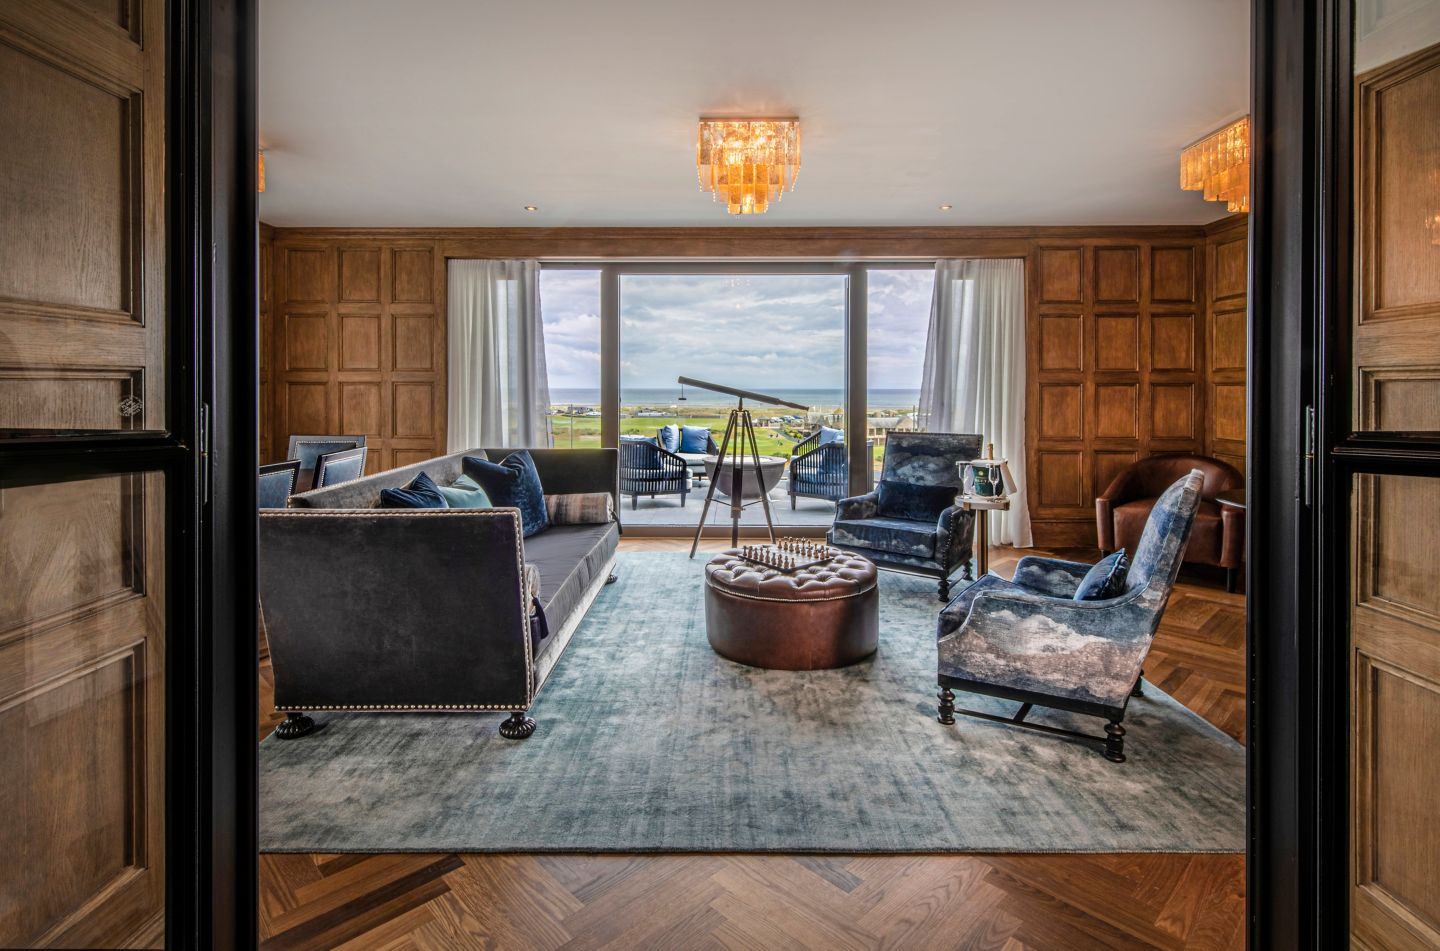 The Penthouse suite living area at the Old Course Hotel, St Andrews, with views out to the North Sea